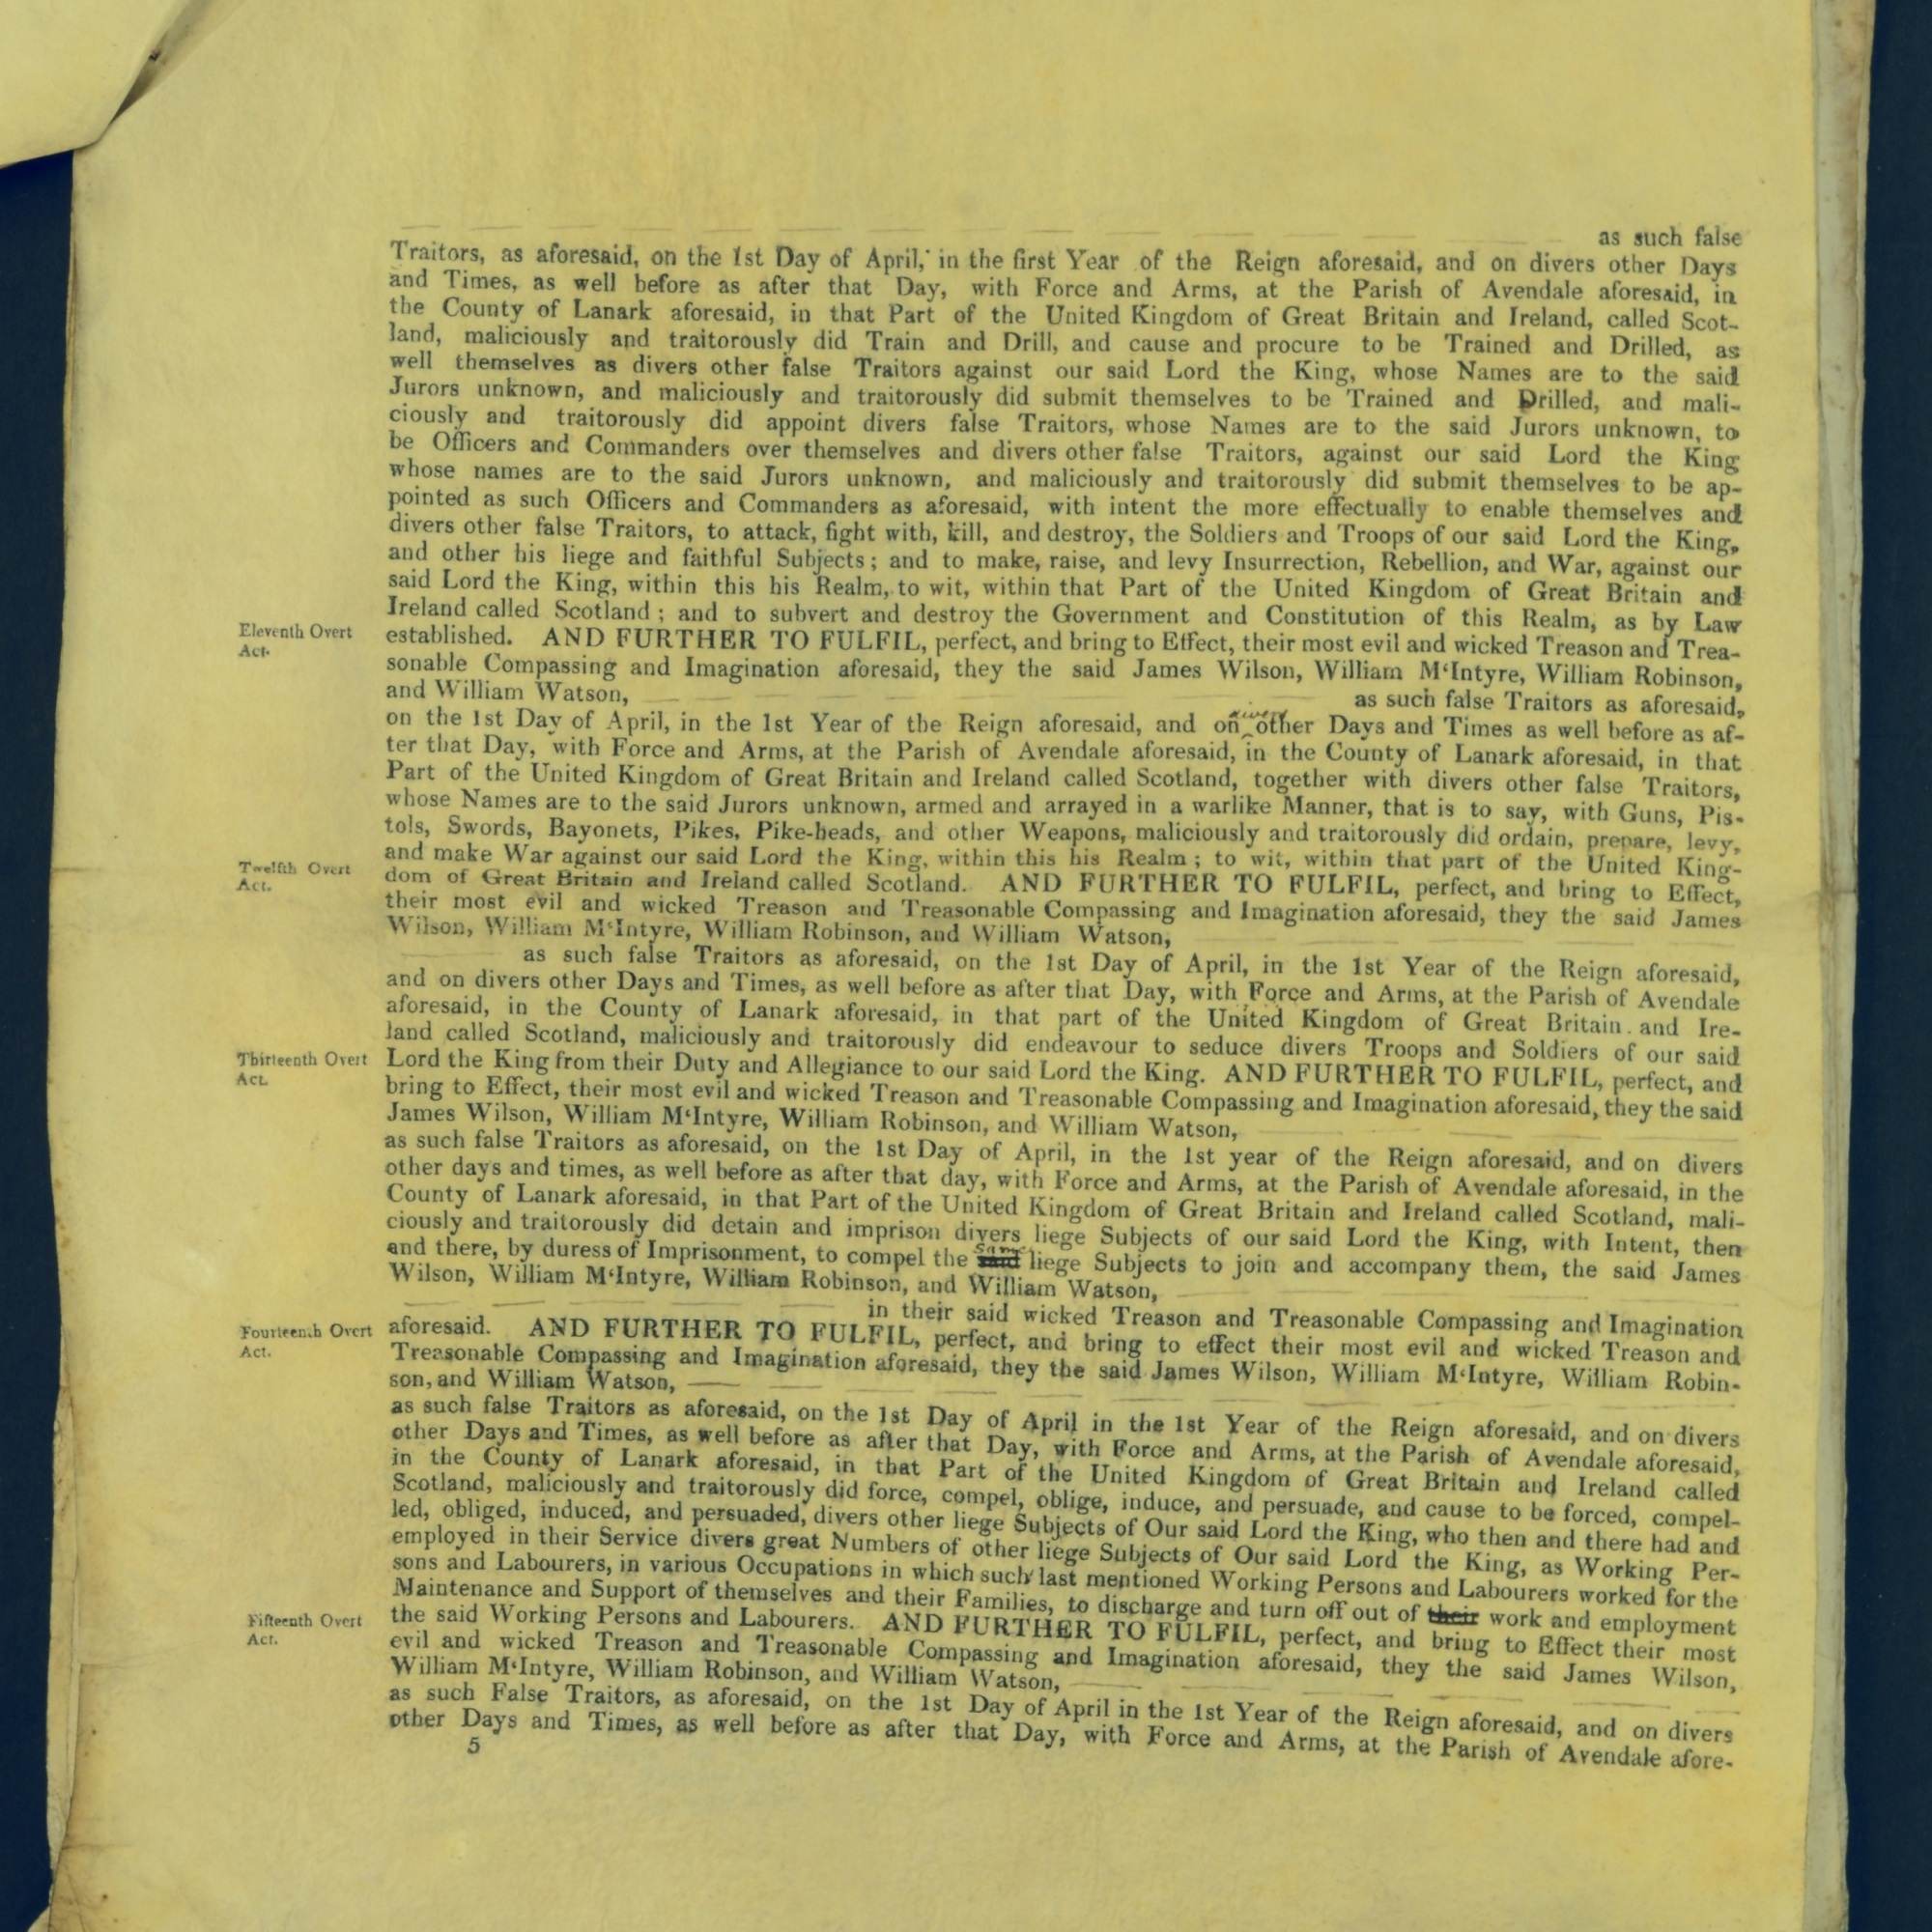 Treason Trials for the County of Lanark, the Strathaven Case. True bills found against four men, James Wilson, William McIntyre, William Robinson and William Watson. National Records of Scotland, Crown copyright, JC21/3/4 p5